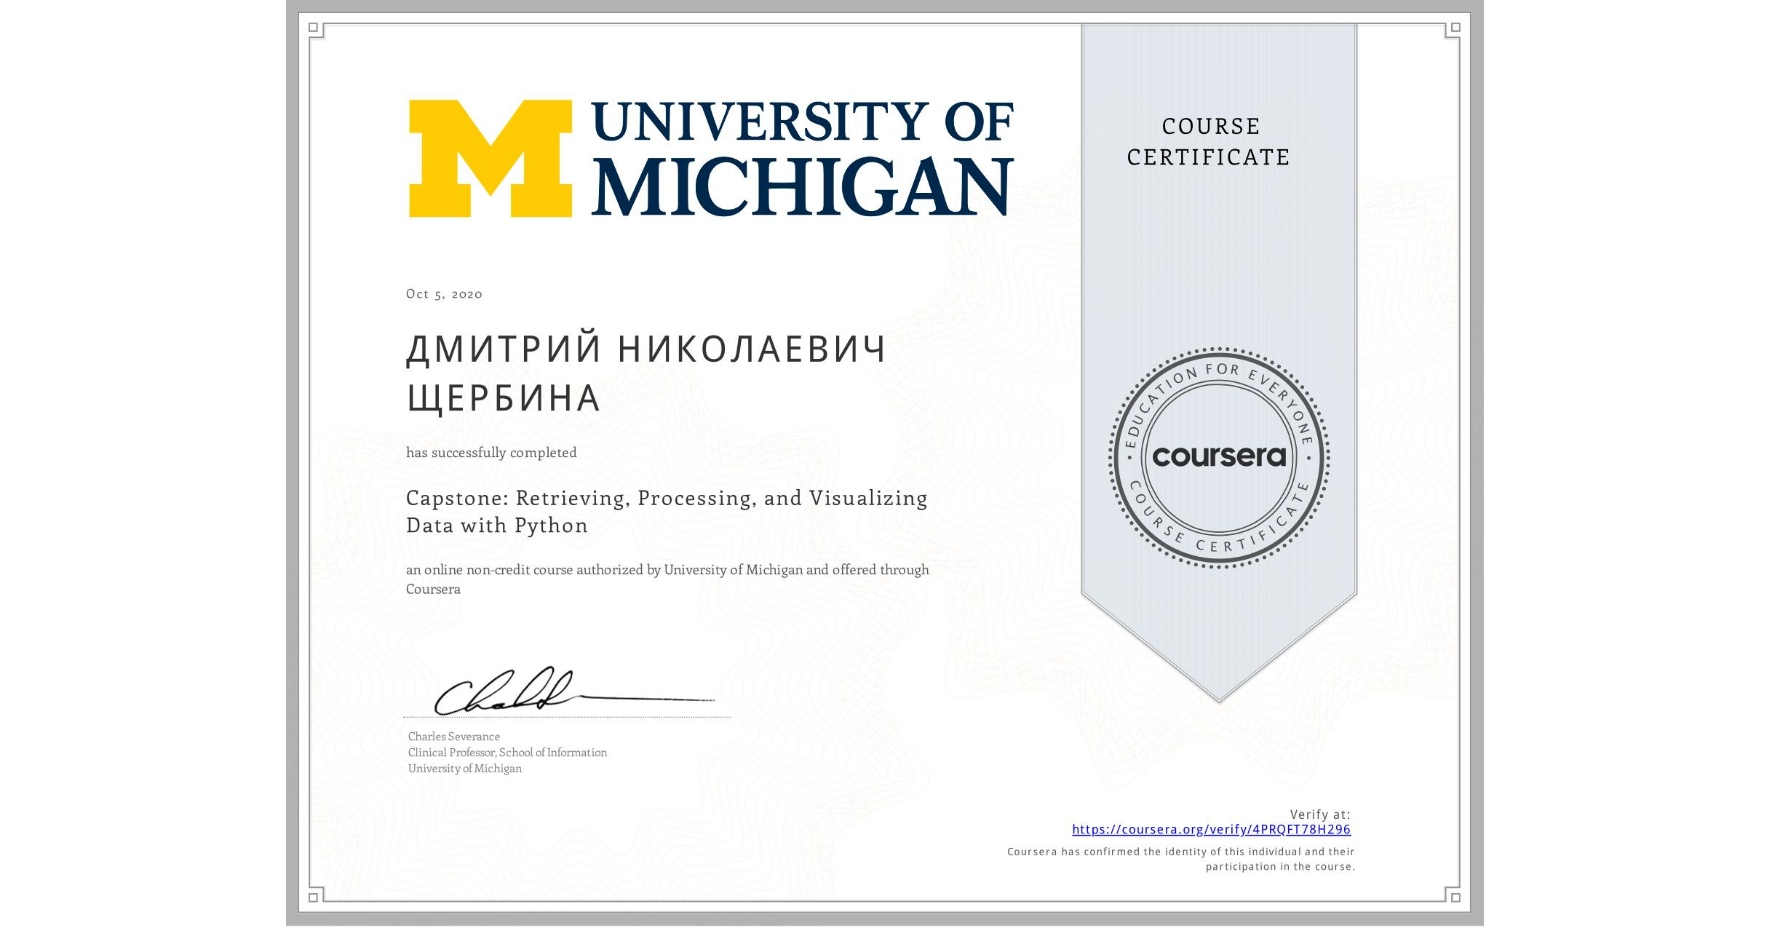 View certificate for ДМИТРИЙ НИКОЛАЕВИЧ ЩЕРБИНА, Capstone: Retrieving, Processing, and Visualizing Data with Python, an online non-credit course authorized by University of Michigan and offered through Coursera